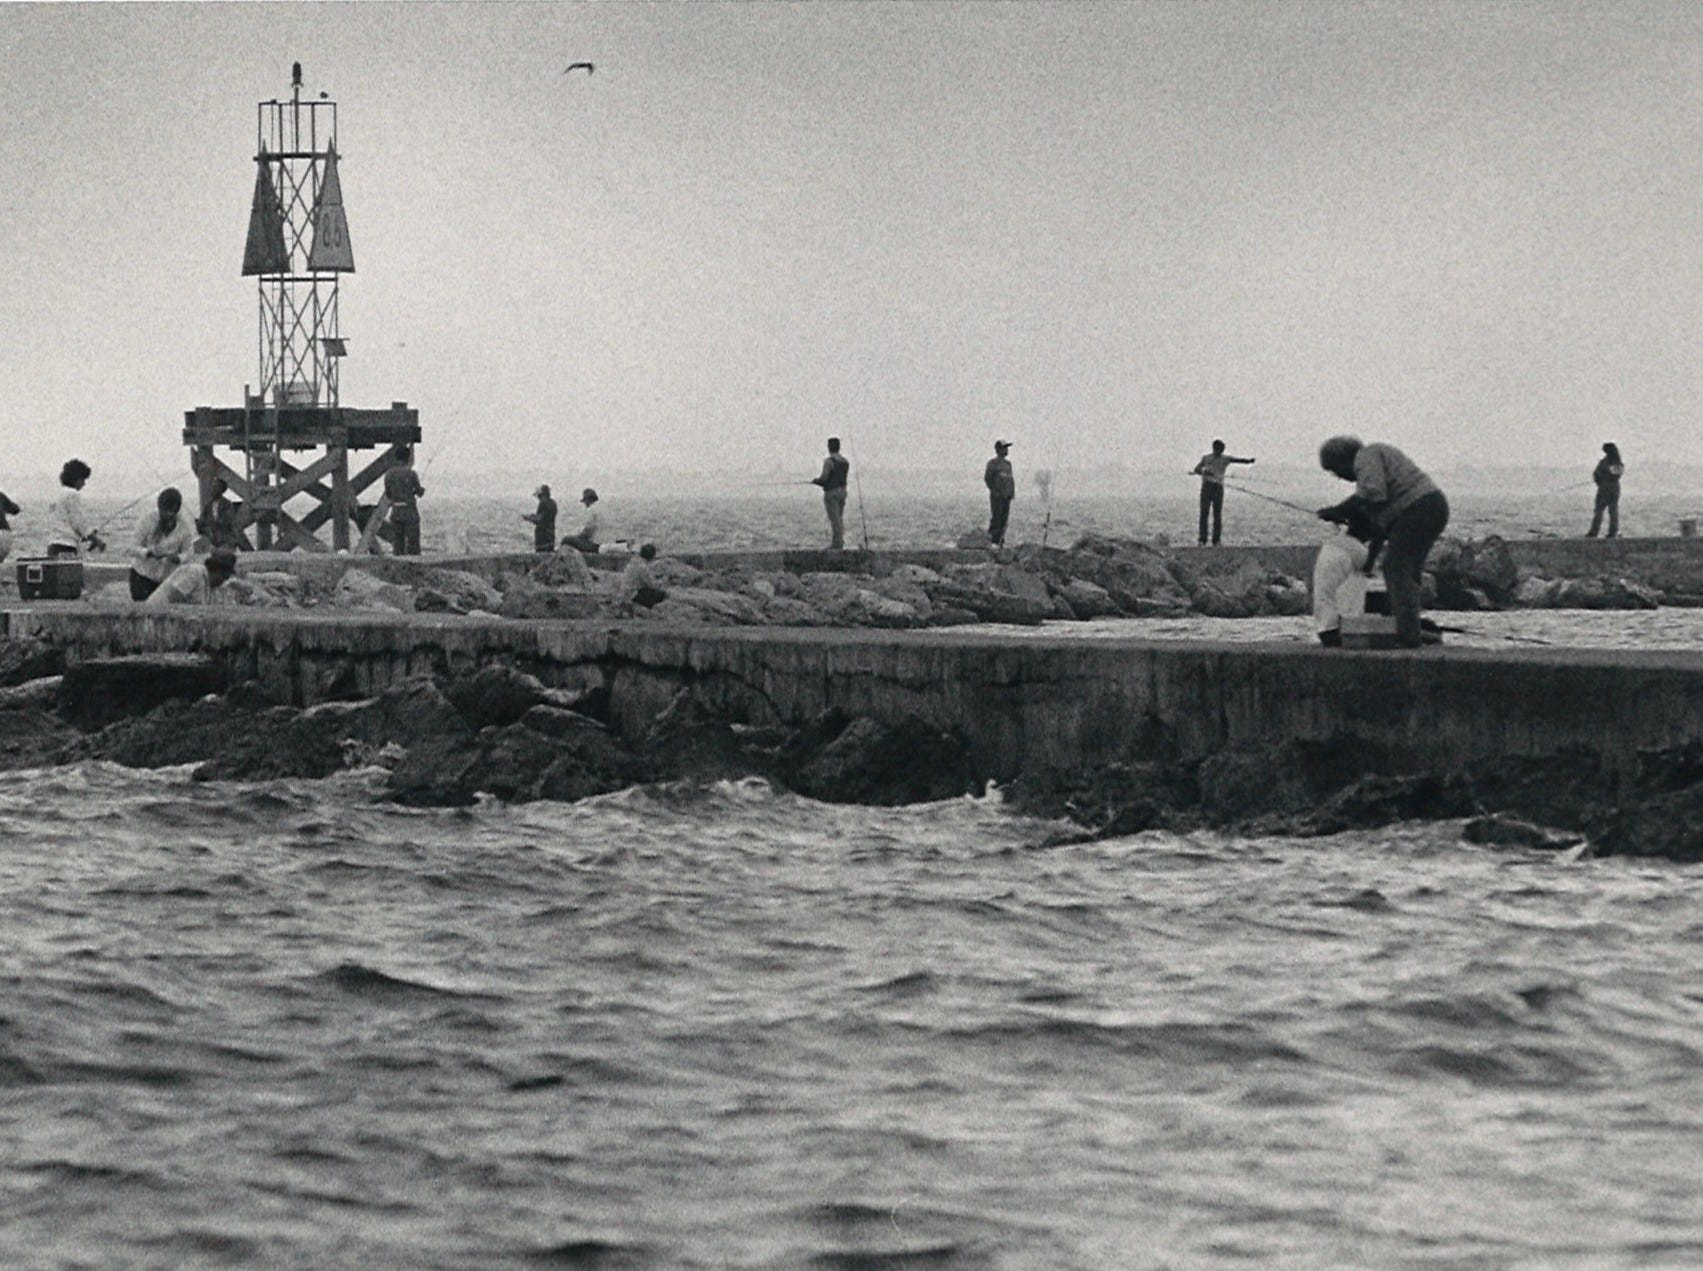 A busy day on the jetty on Corpus Christi's North Bach on Nov. 23, 1985.